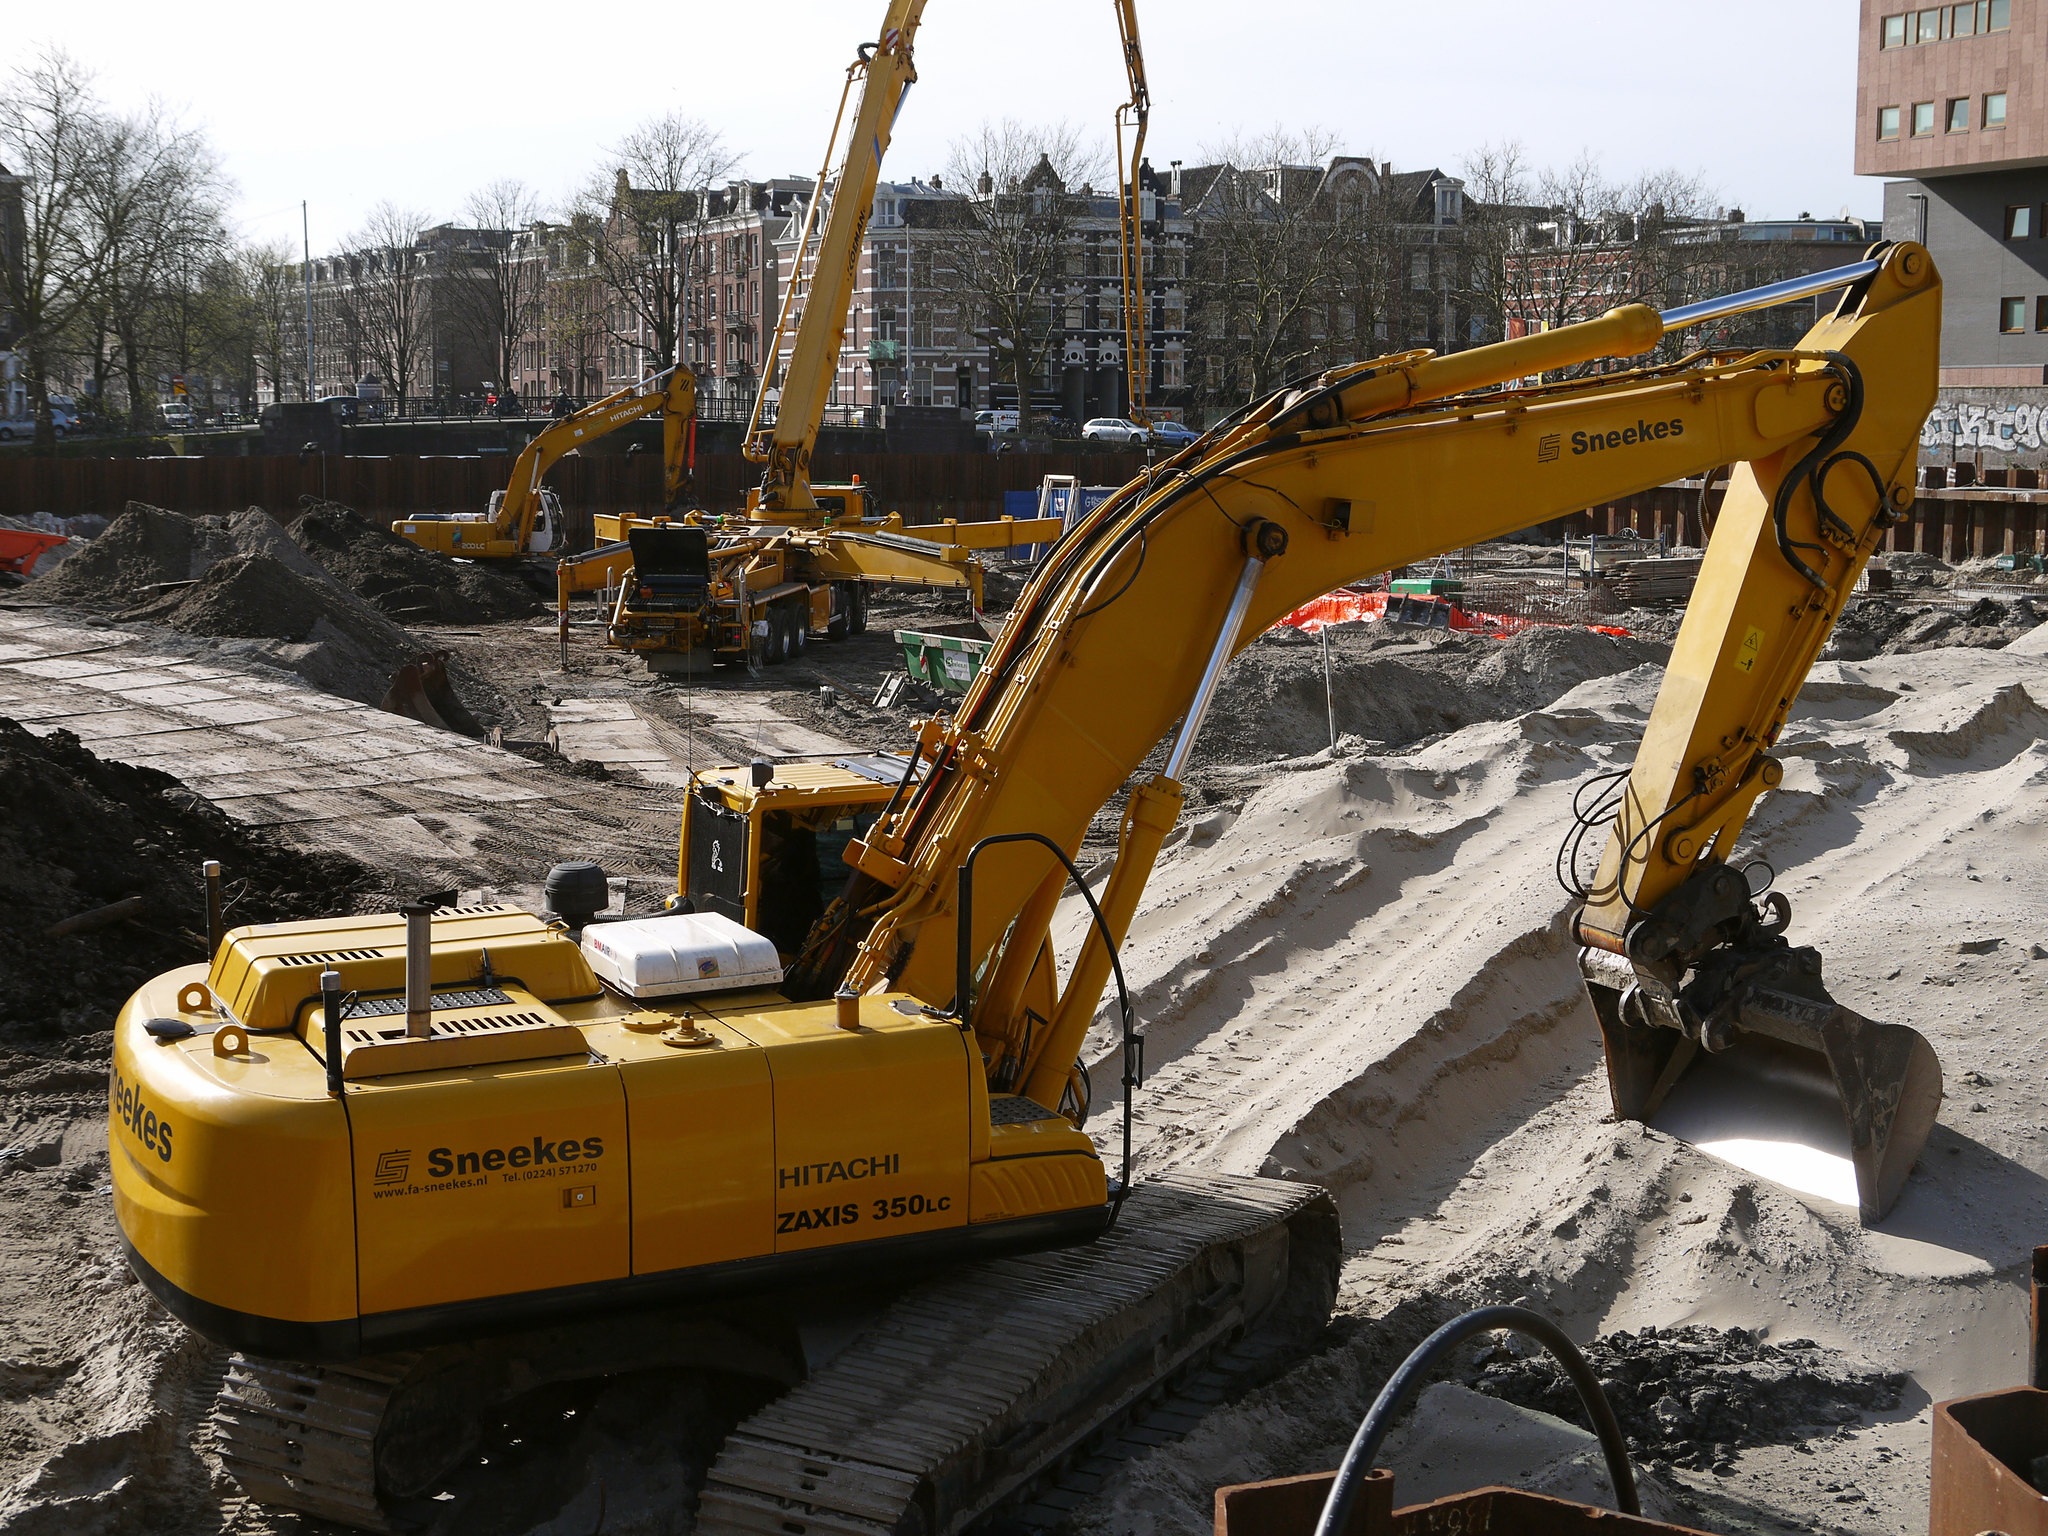 """2014.03 - Excavation site with cranes, diggers and building equipment, along the canal water; a geotagged free urban picture, in public domain / Commons CCO; city photography by Fons Heijnsbroek, The Netherlands"" by Amsterdam free photos & pictures of the Dutch city is marked with CC0 1.0"